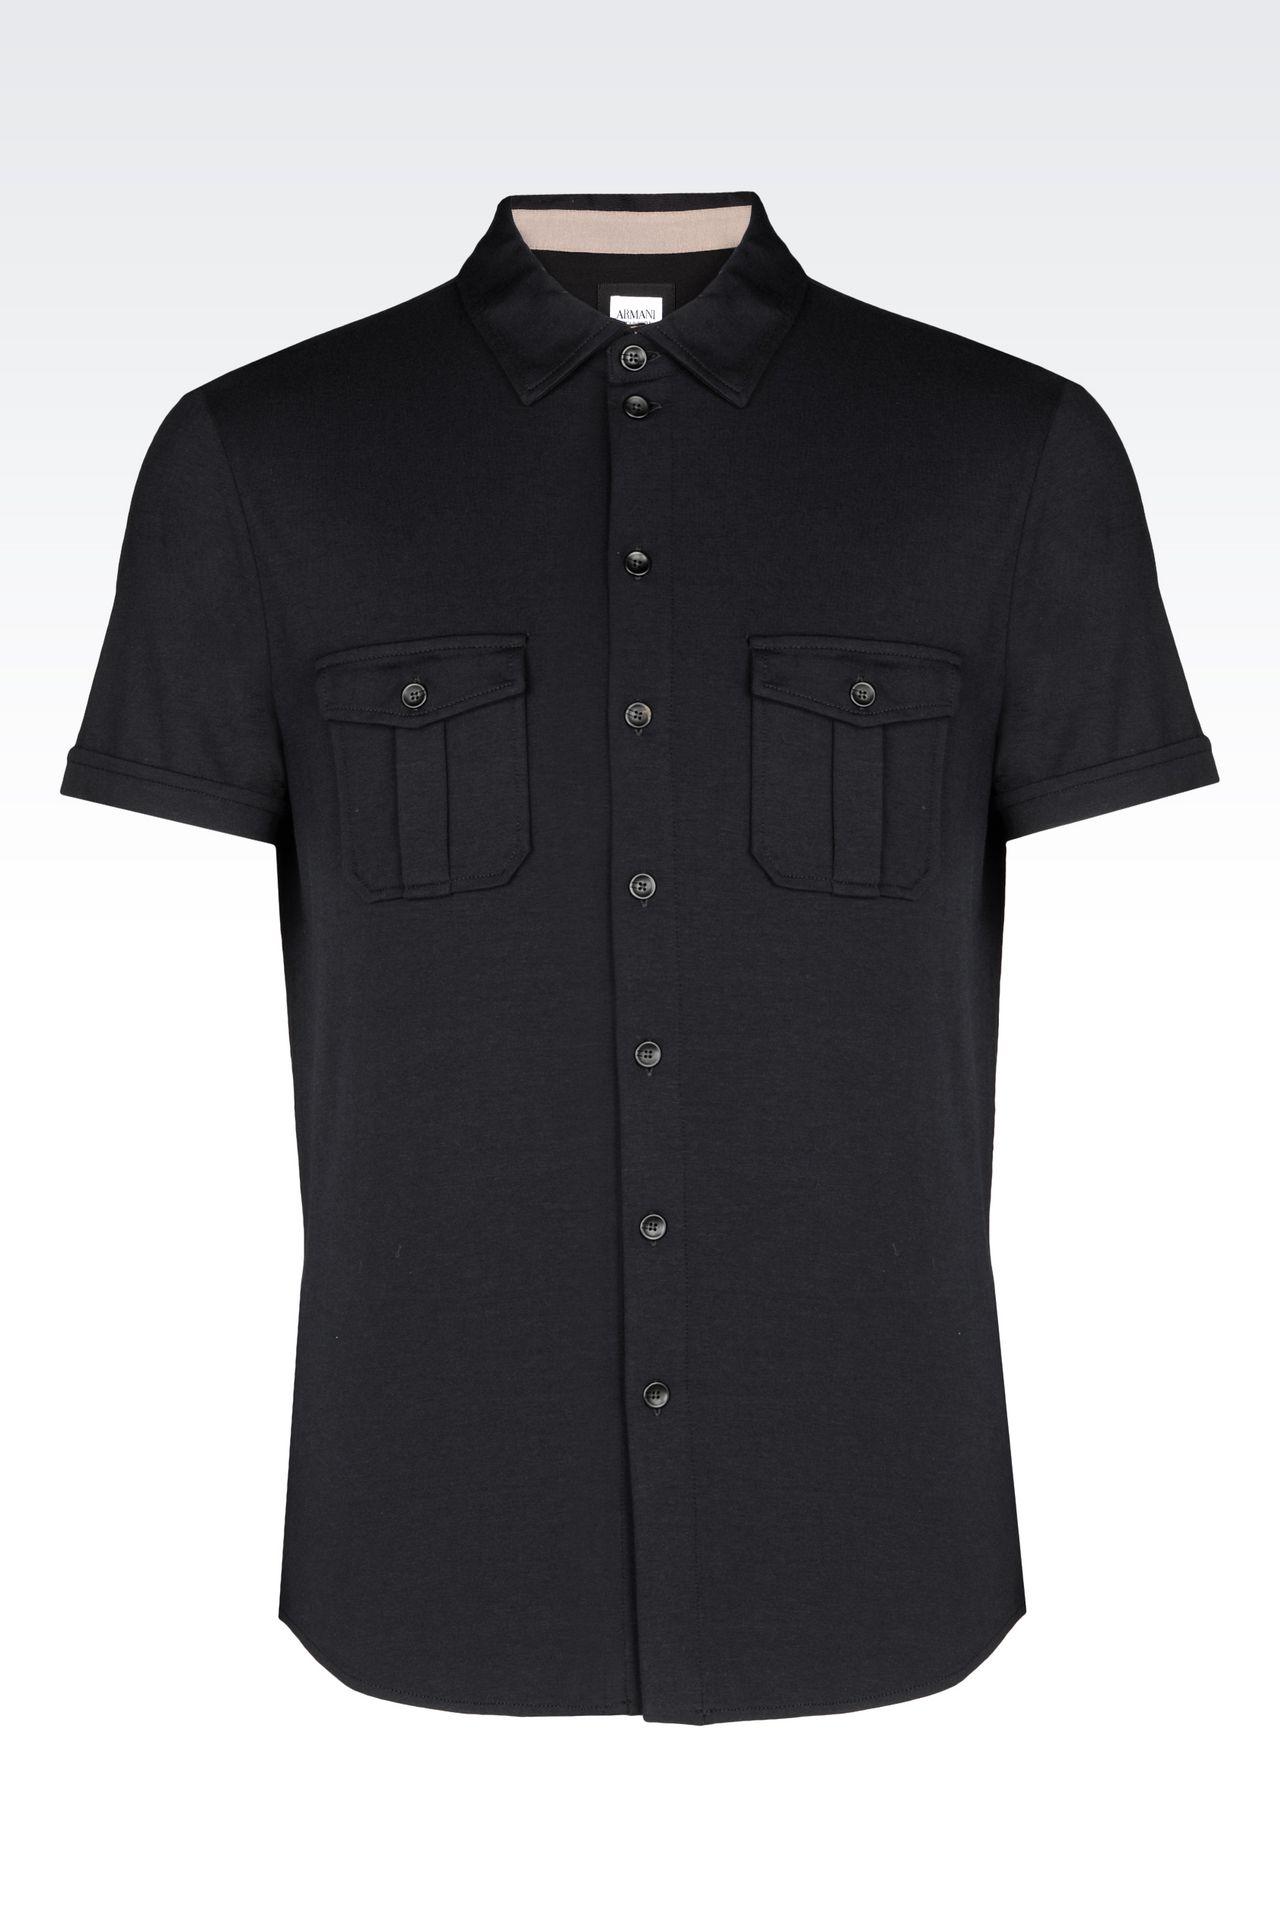 Short sleeve black shirt mens is shirt for Mens black short sleeve dress shirt